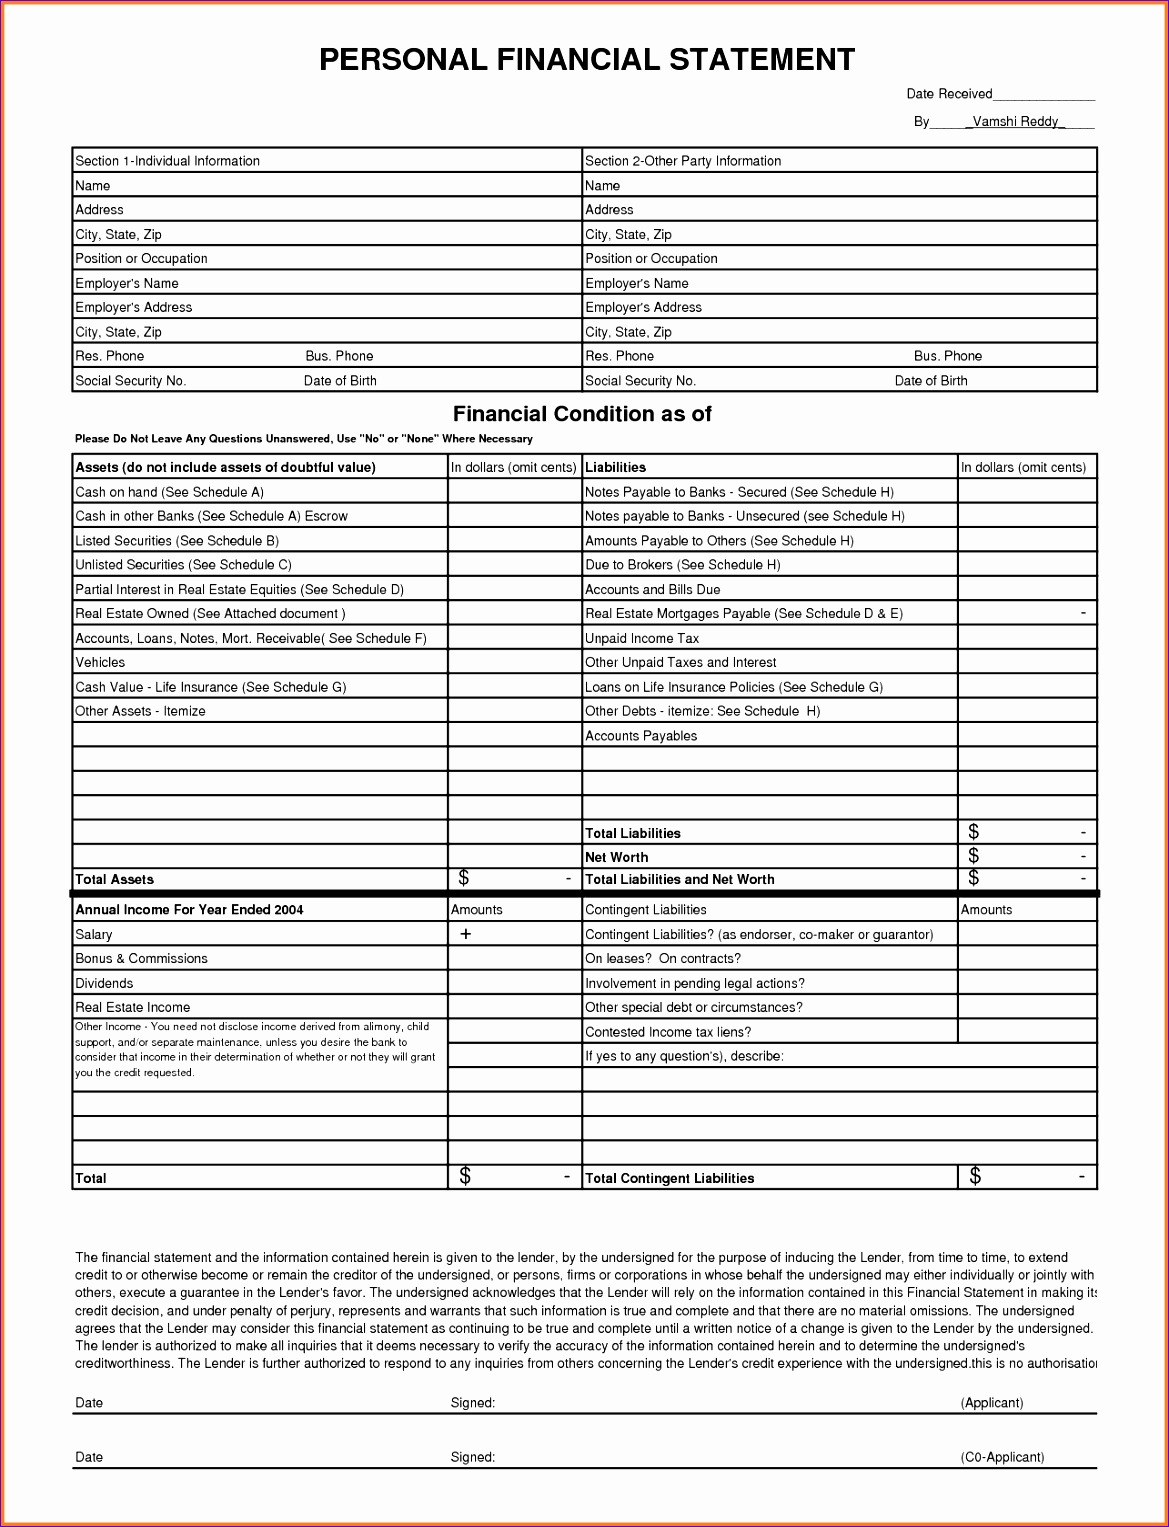 Excel Financial Statement Template Xmaac Best Of 7 Personal Financial Statement form Excel